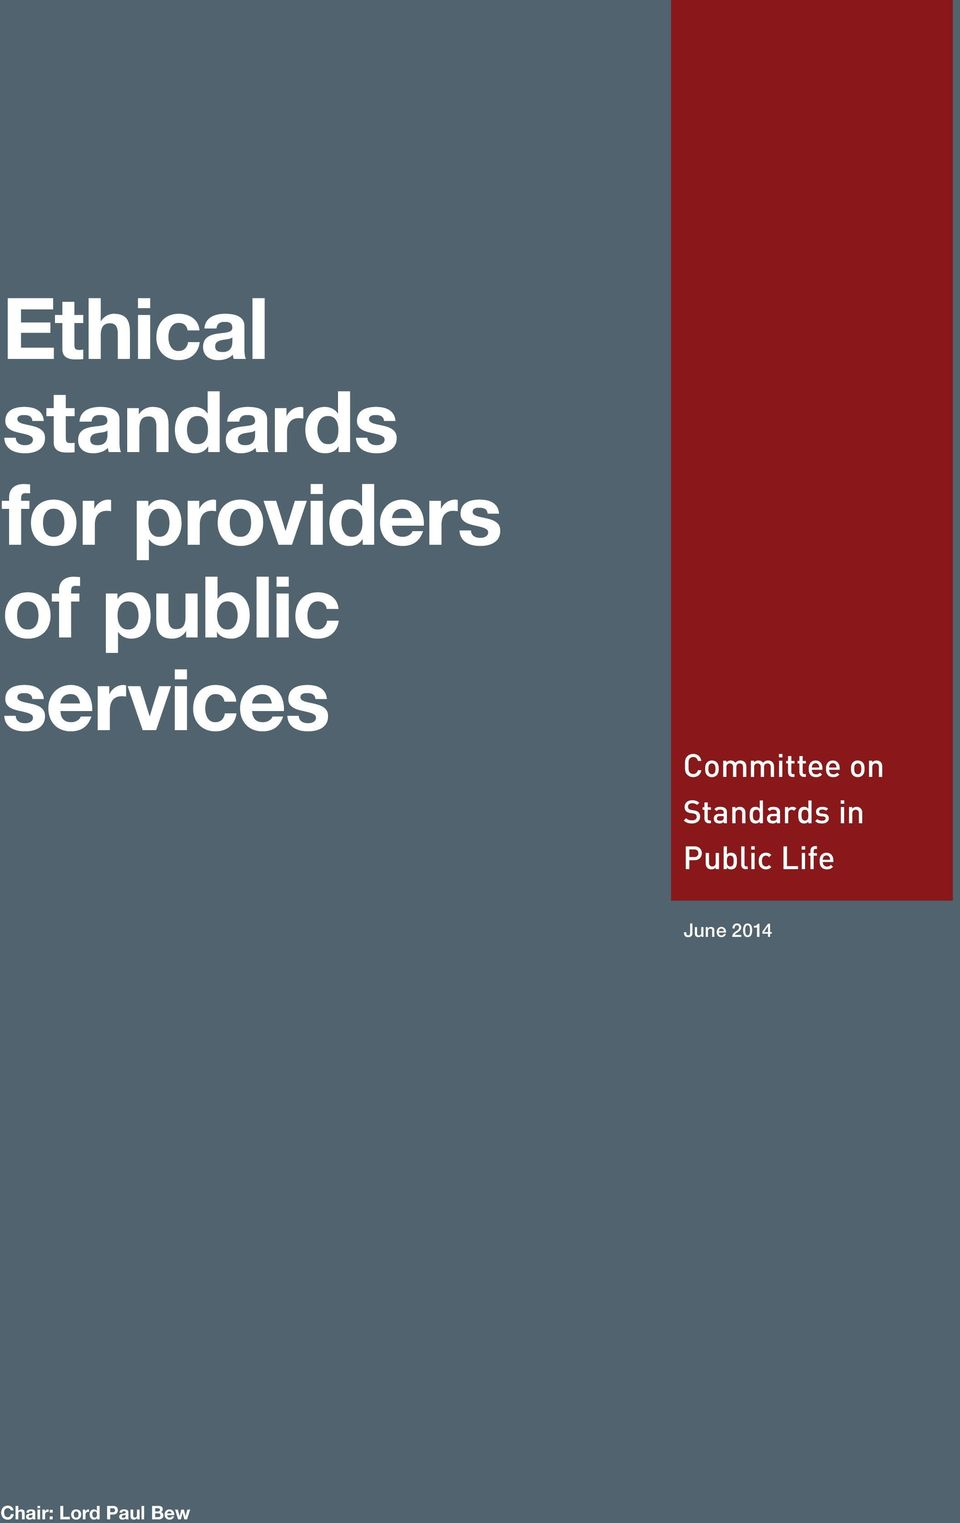 Committee on Standards in